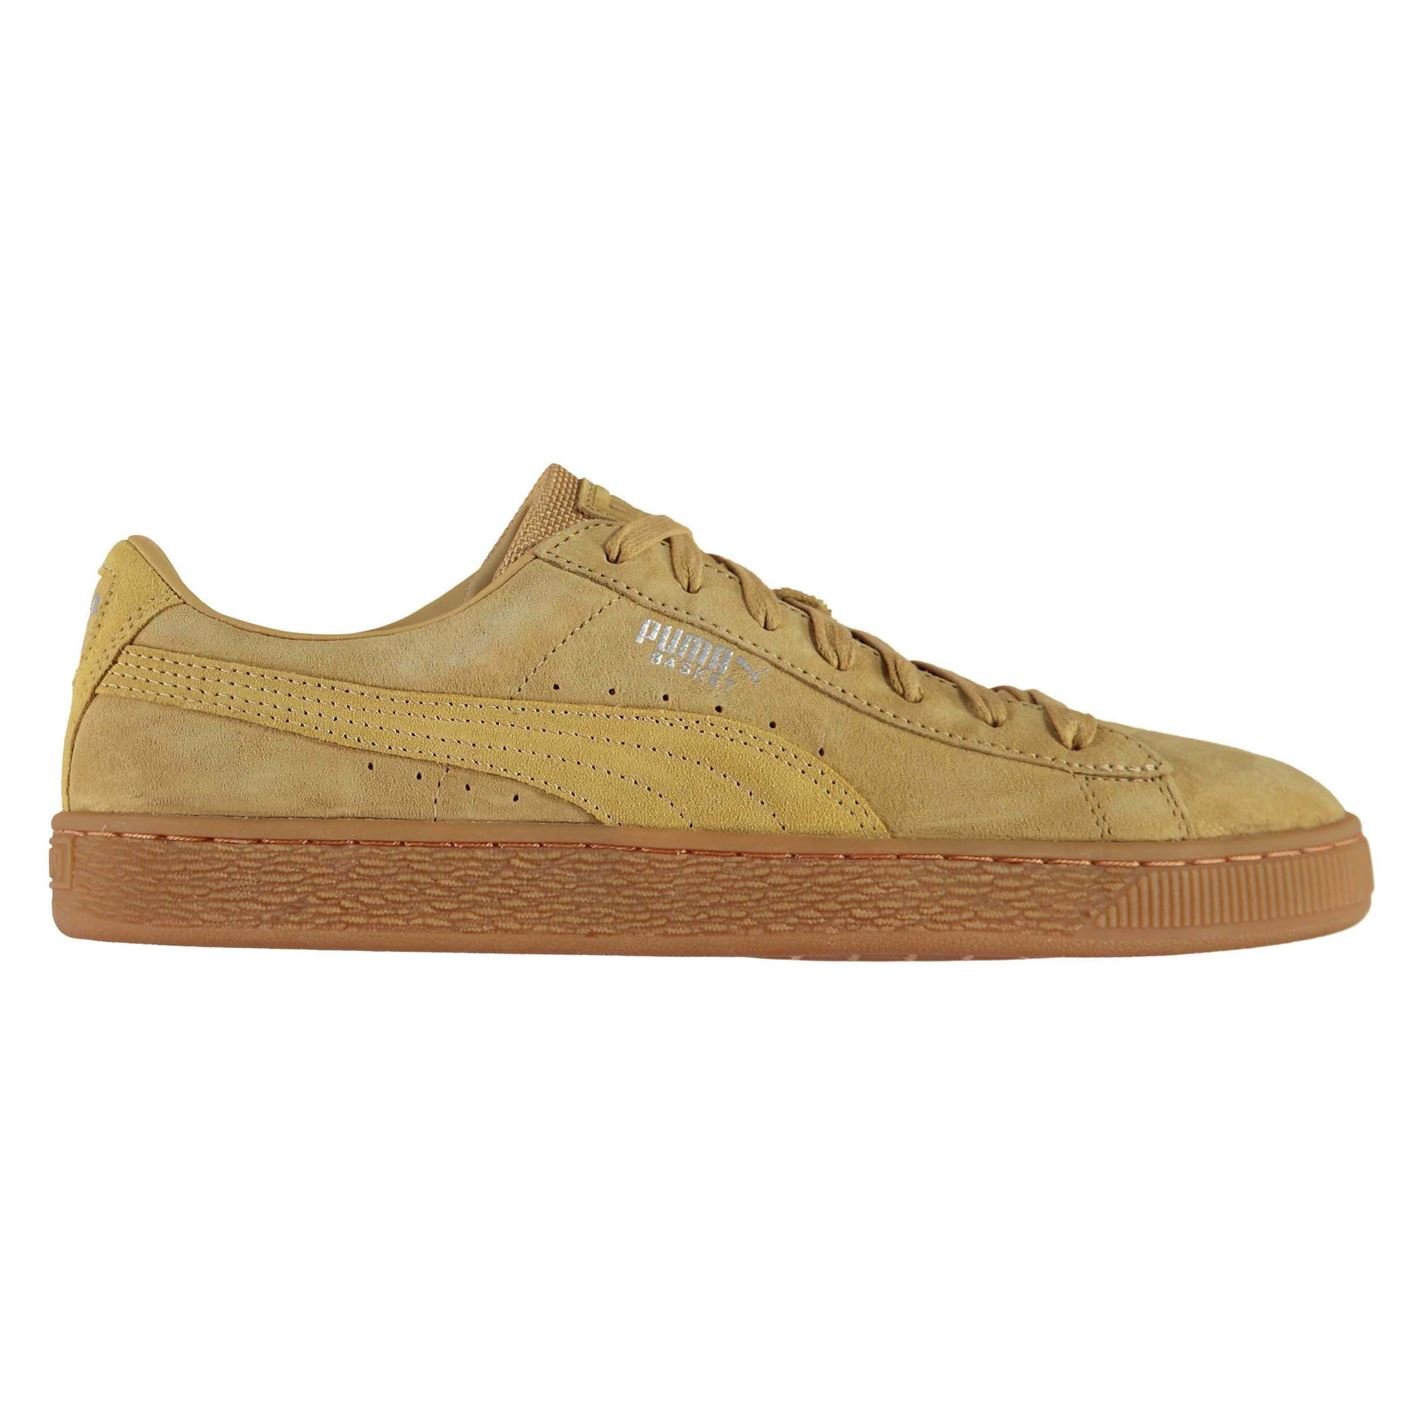 0245f672be5 Puma Basket Weather Trainers Taffy - Glami.cz